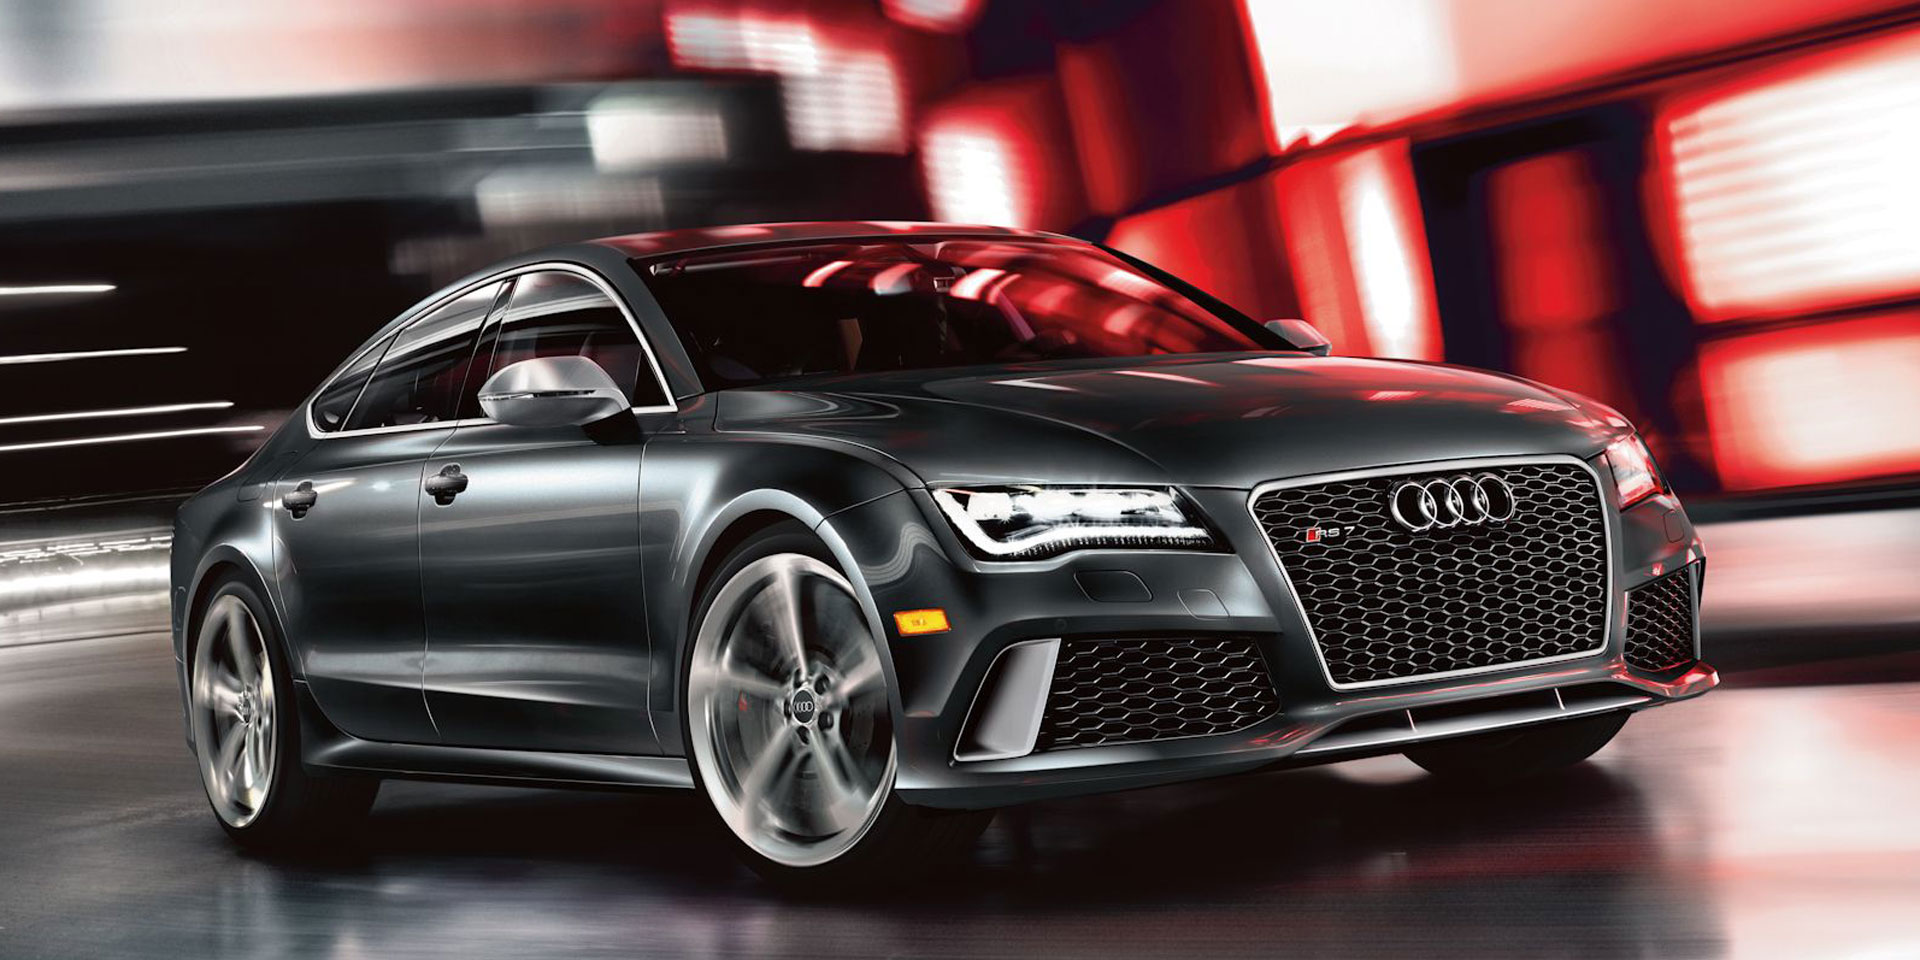 2018 Audi A7 S7 Rs7 Vehicles On Display Chicago Auto Show